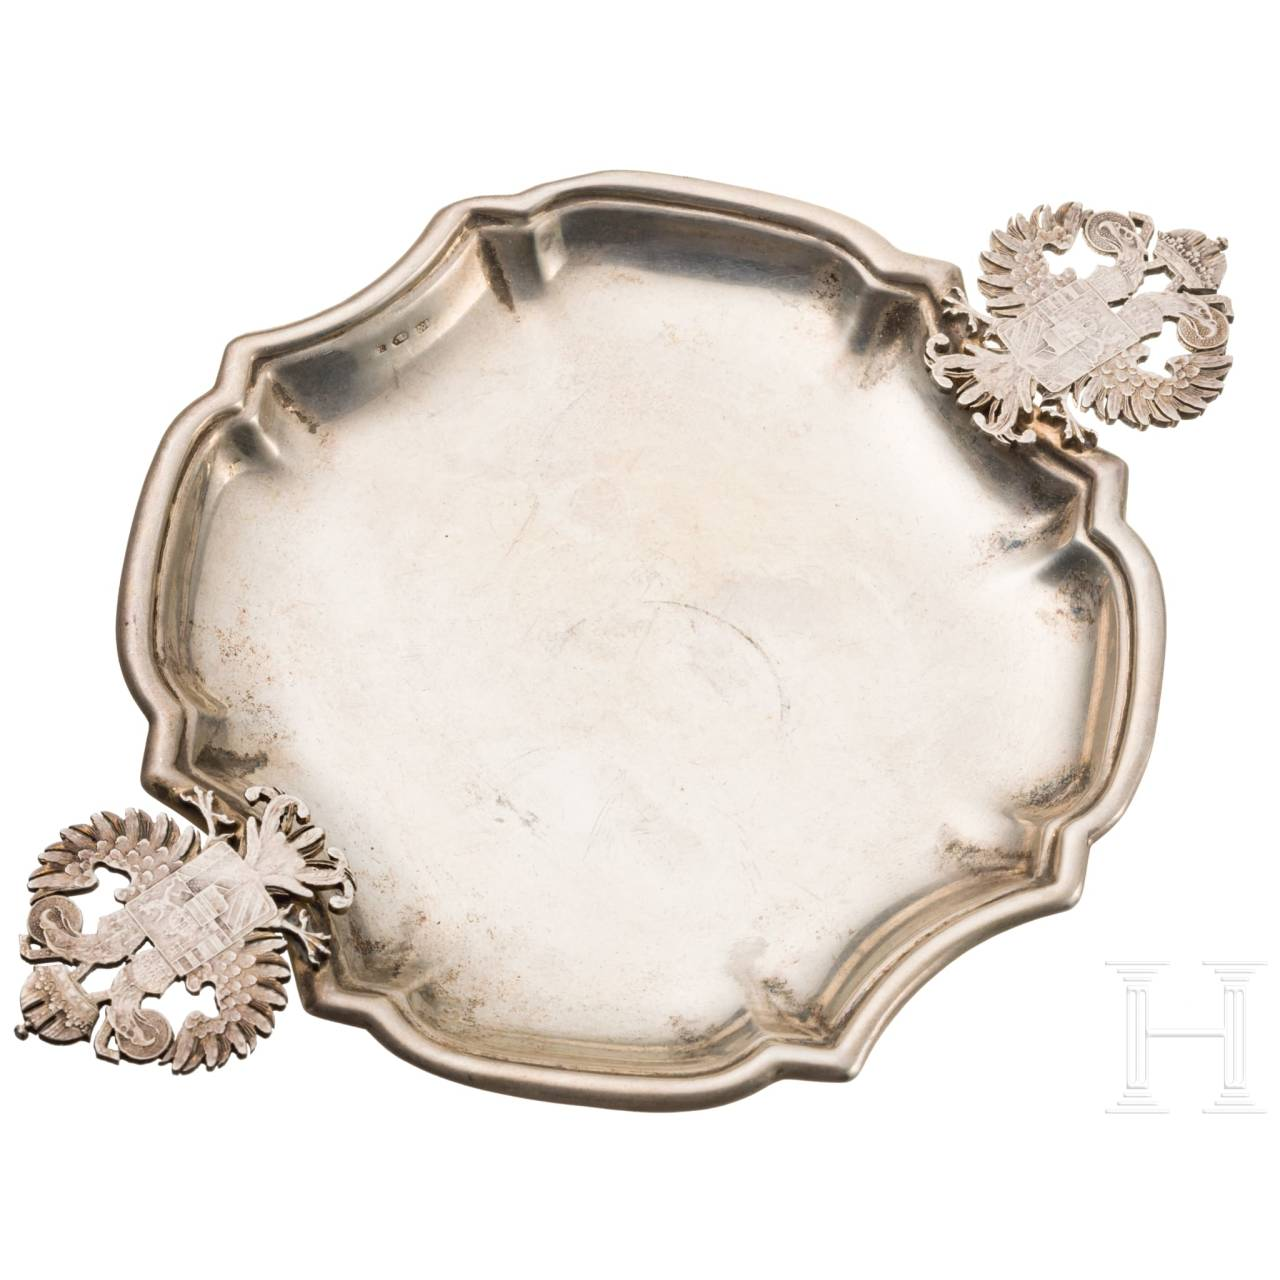 Small silver tray with double headed eagle handles and coat of arms representation for Austria-Hungary, 19th century